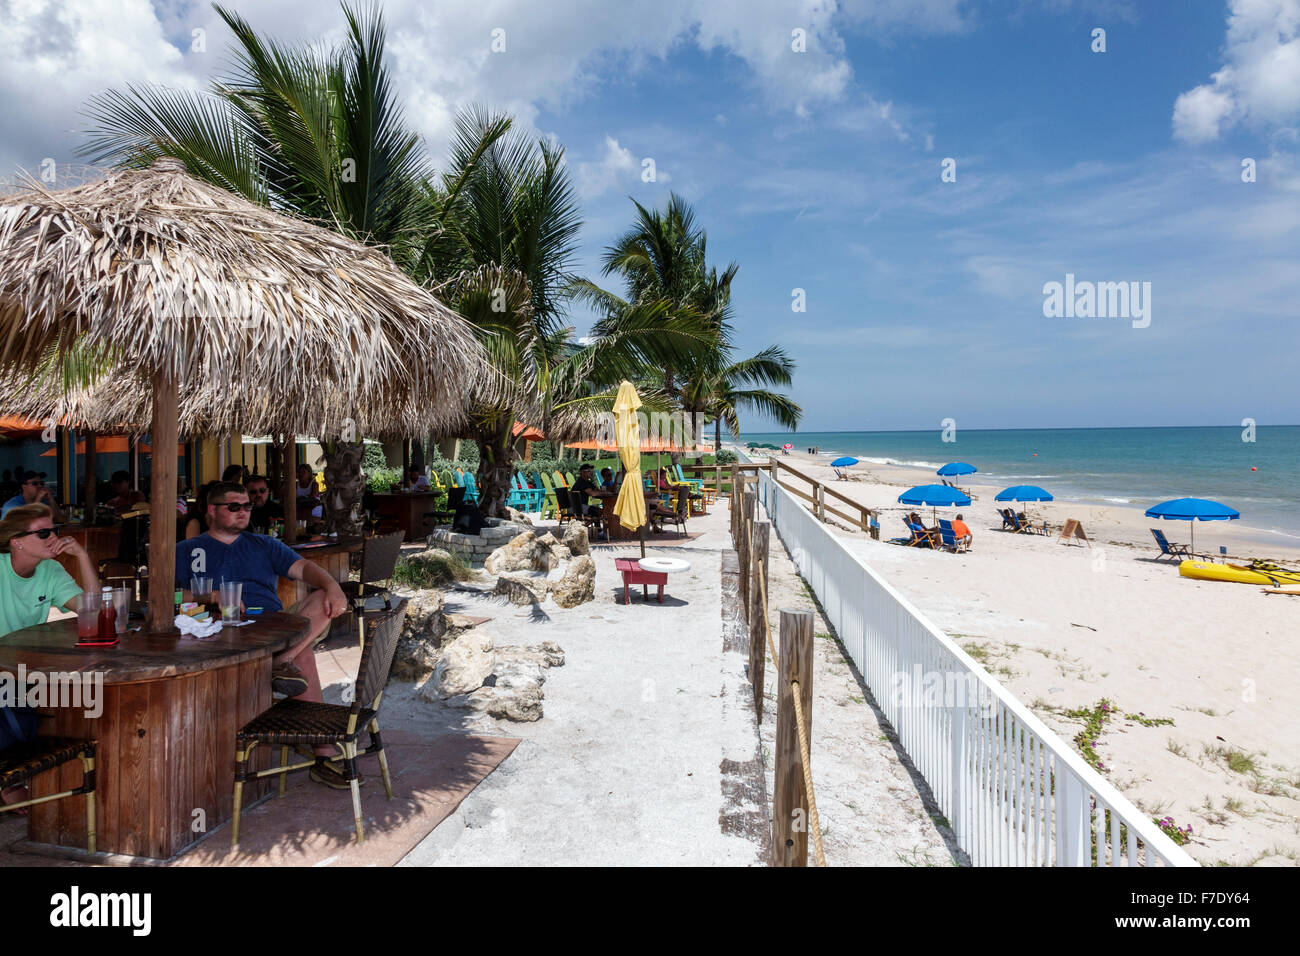 Vero Beach Florida Nord Hutchinson Orchid Island Mulligan's Beach House Restaurant tiki ombrello in stile sala Immagini Stock